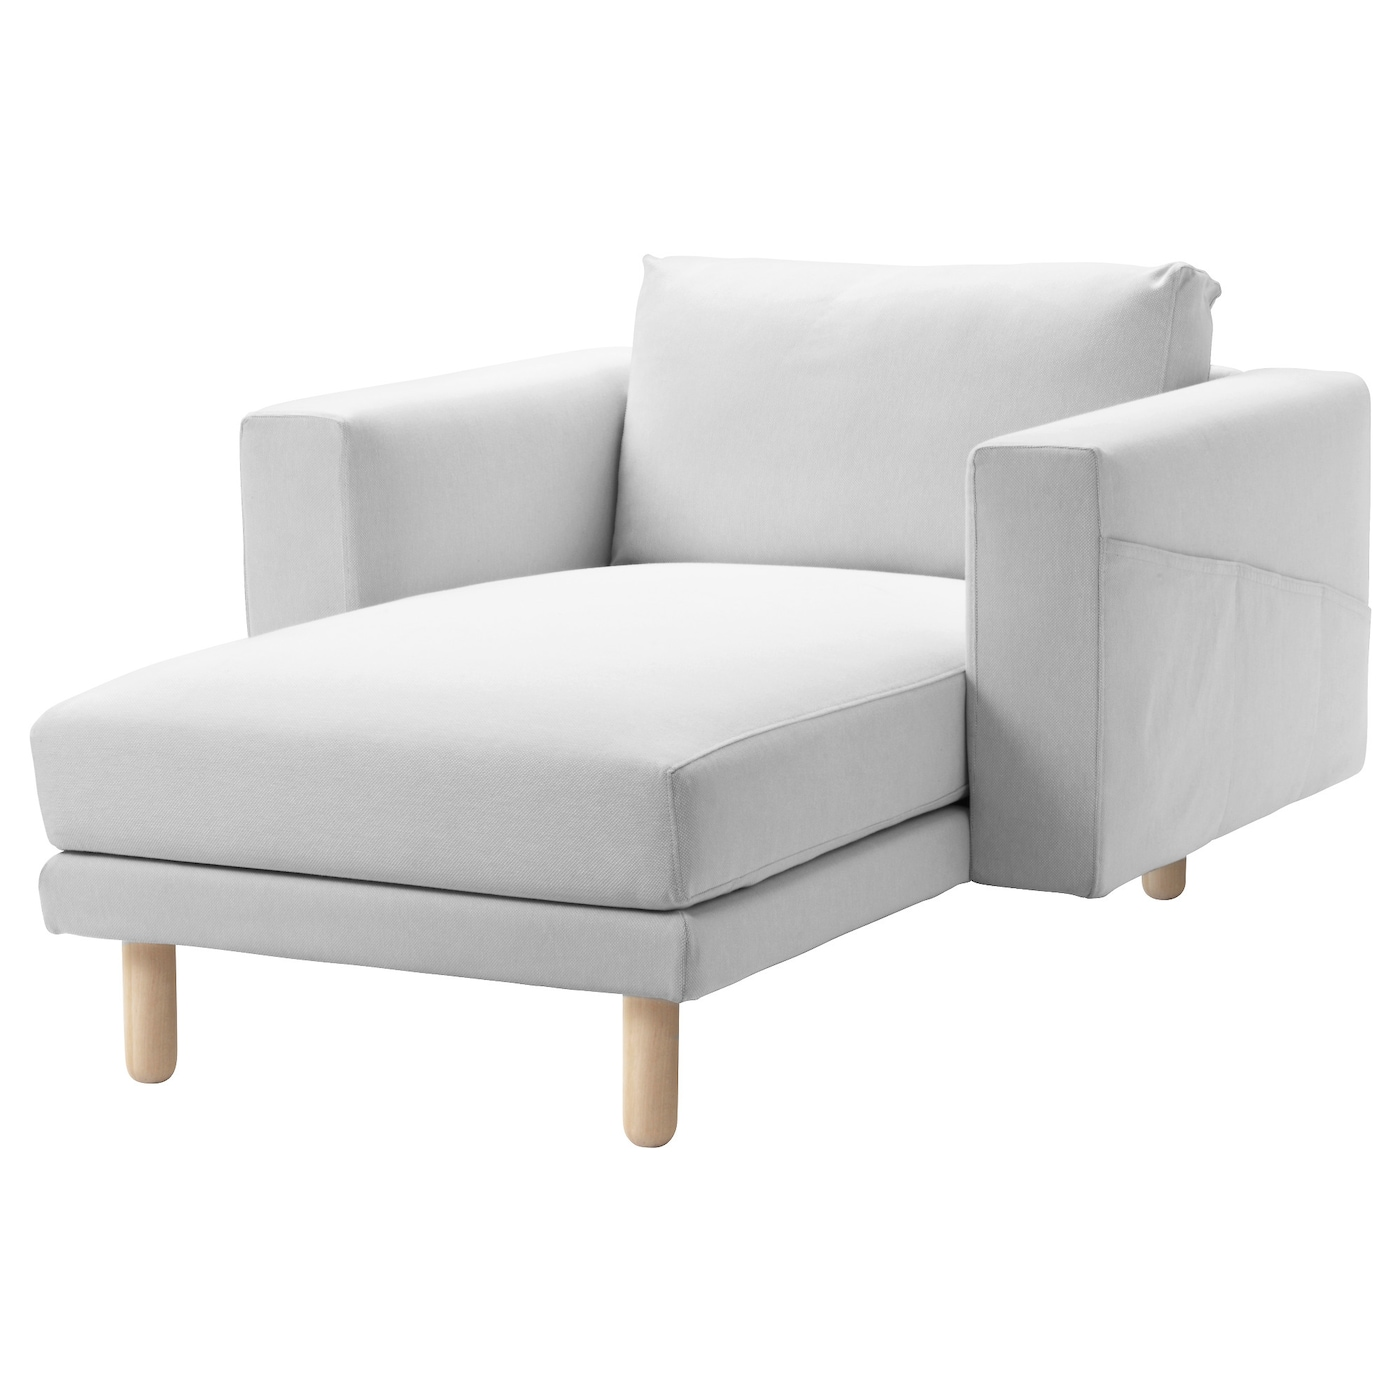 norsborg chaise longue finnsta white birch ikea. Black Bedroom Furniture Sets. Home Design Ideas